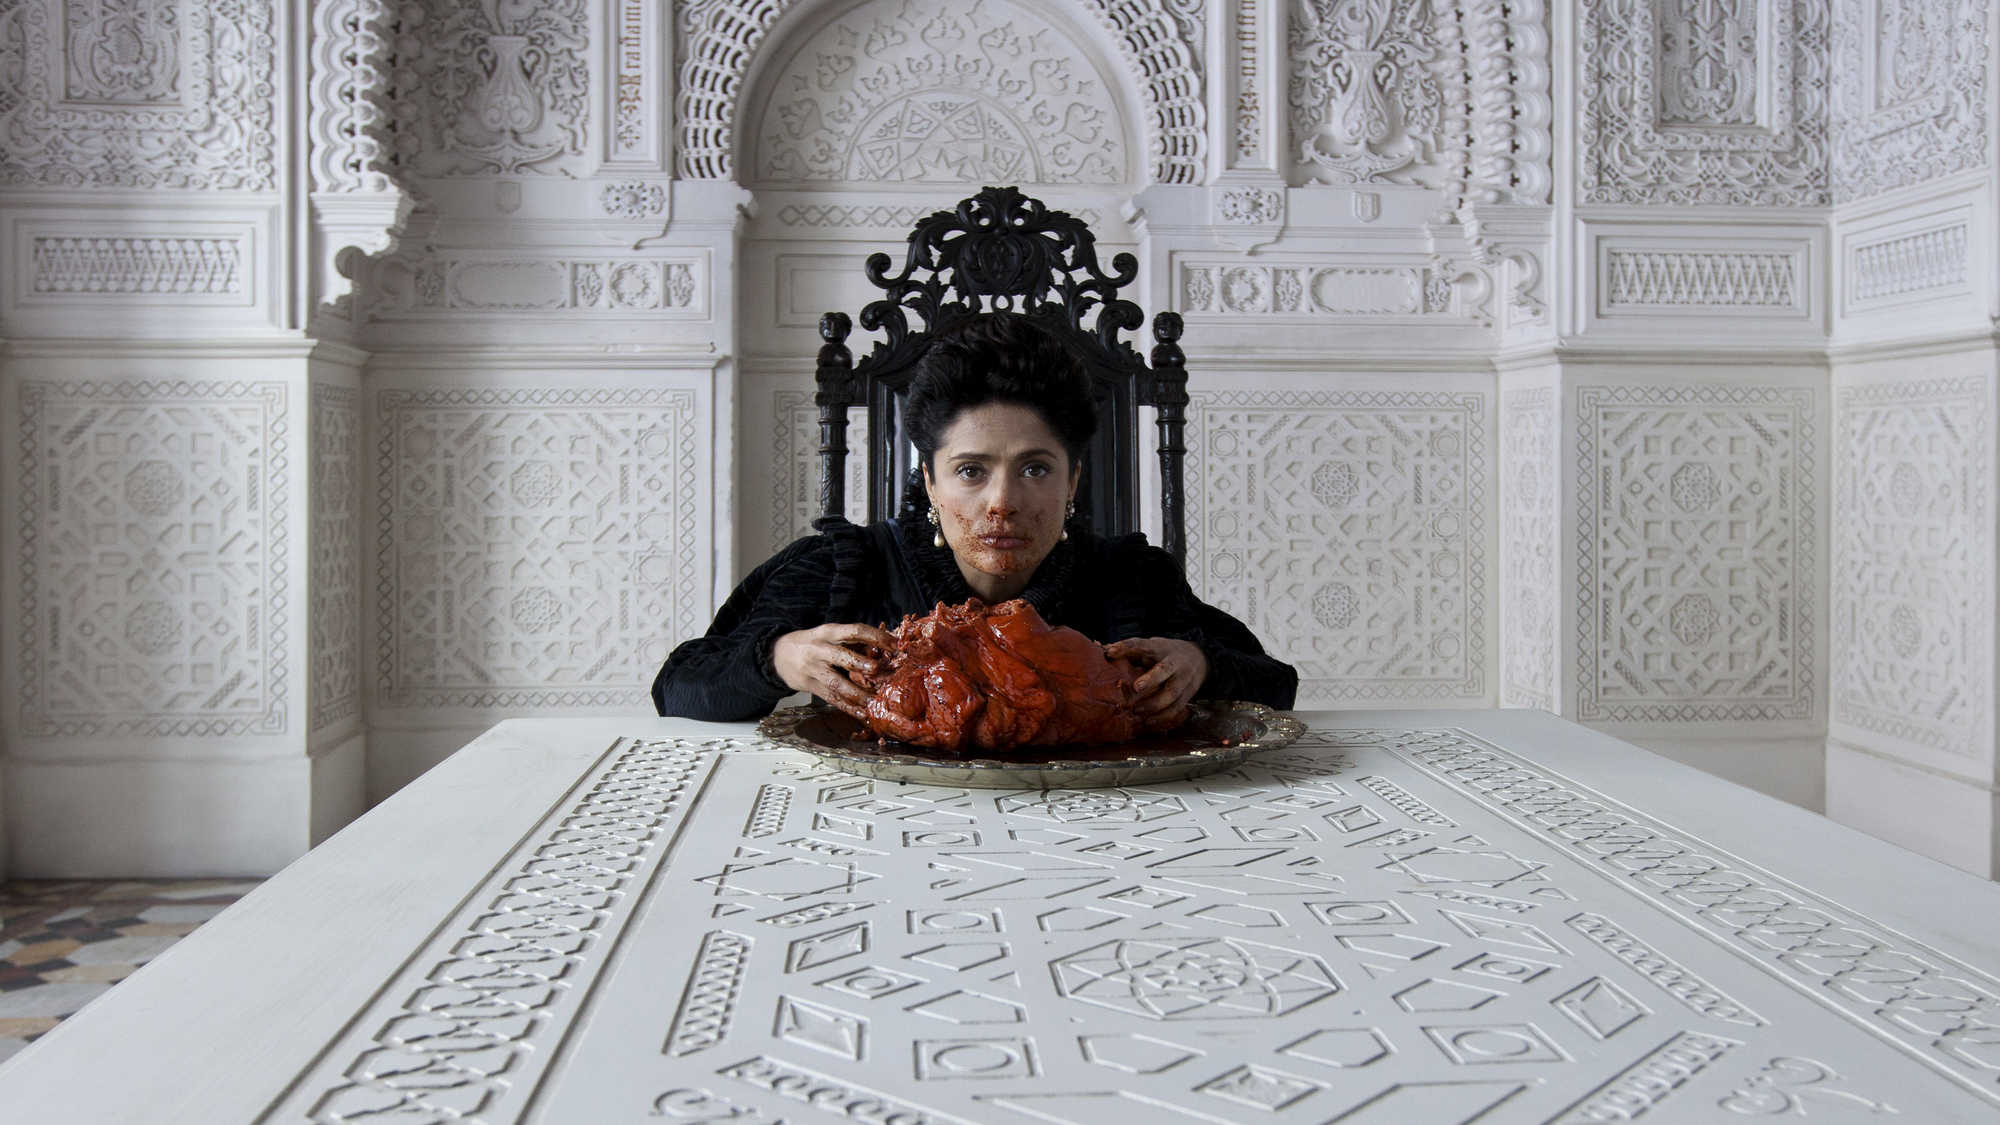 Tale of Tales (image 2)